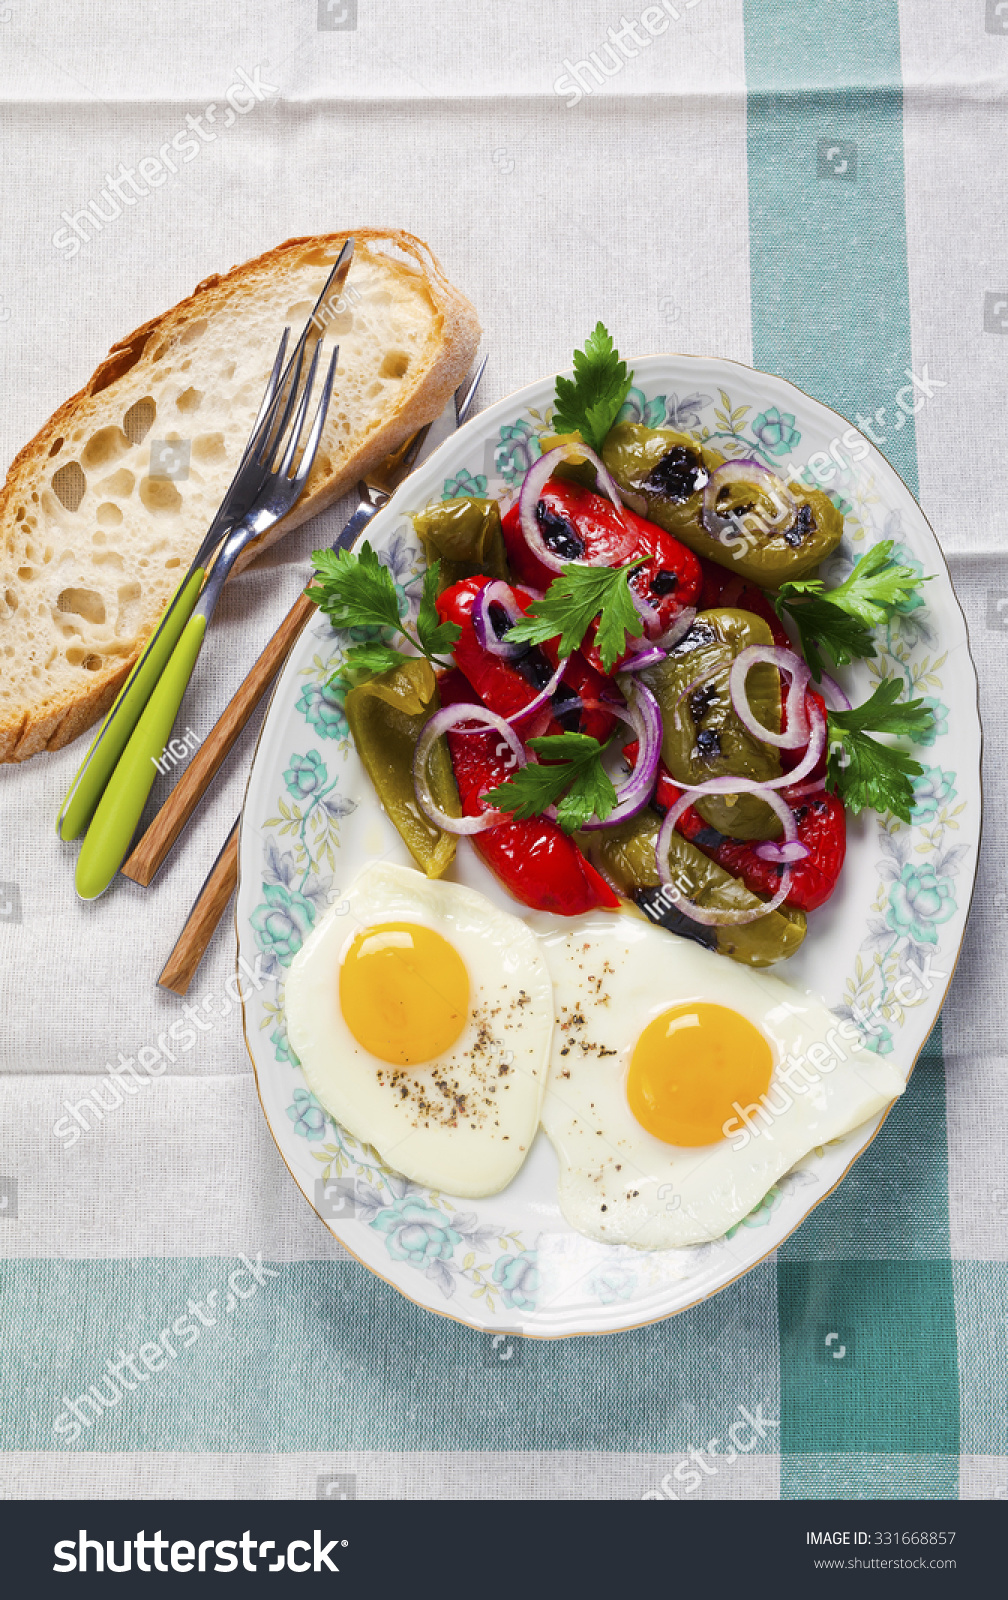 Light healthy lunch fried egg salad stock photo 331668857 shutterstock light healthy lunch with fried egg and salad sisterspd